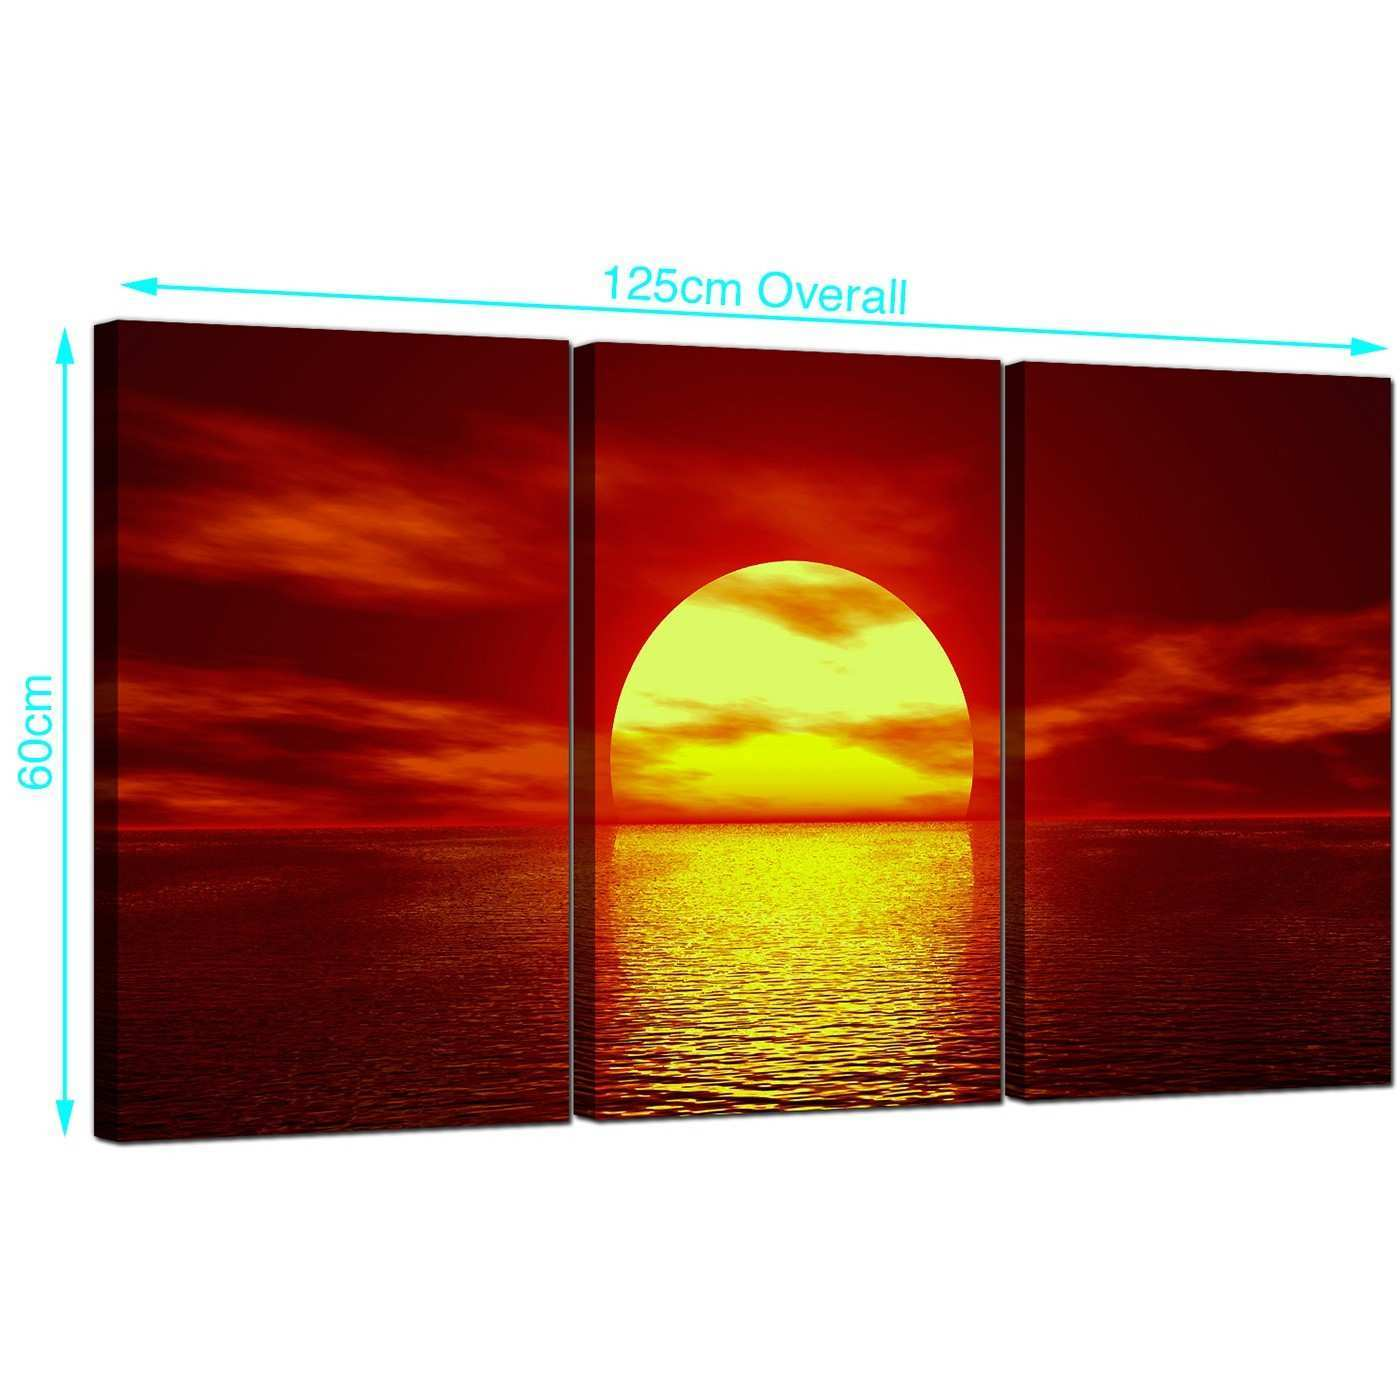 Sunset Orange Living Room vg sunsetseries 1x1 4 piece canvas